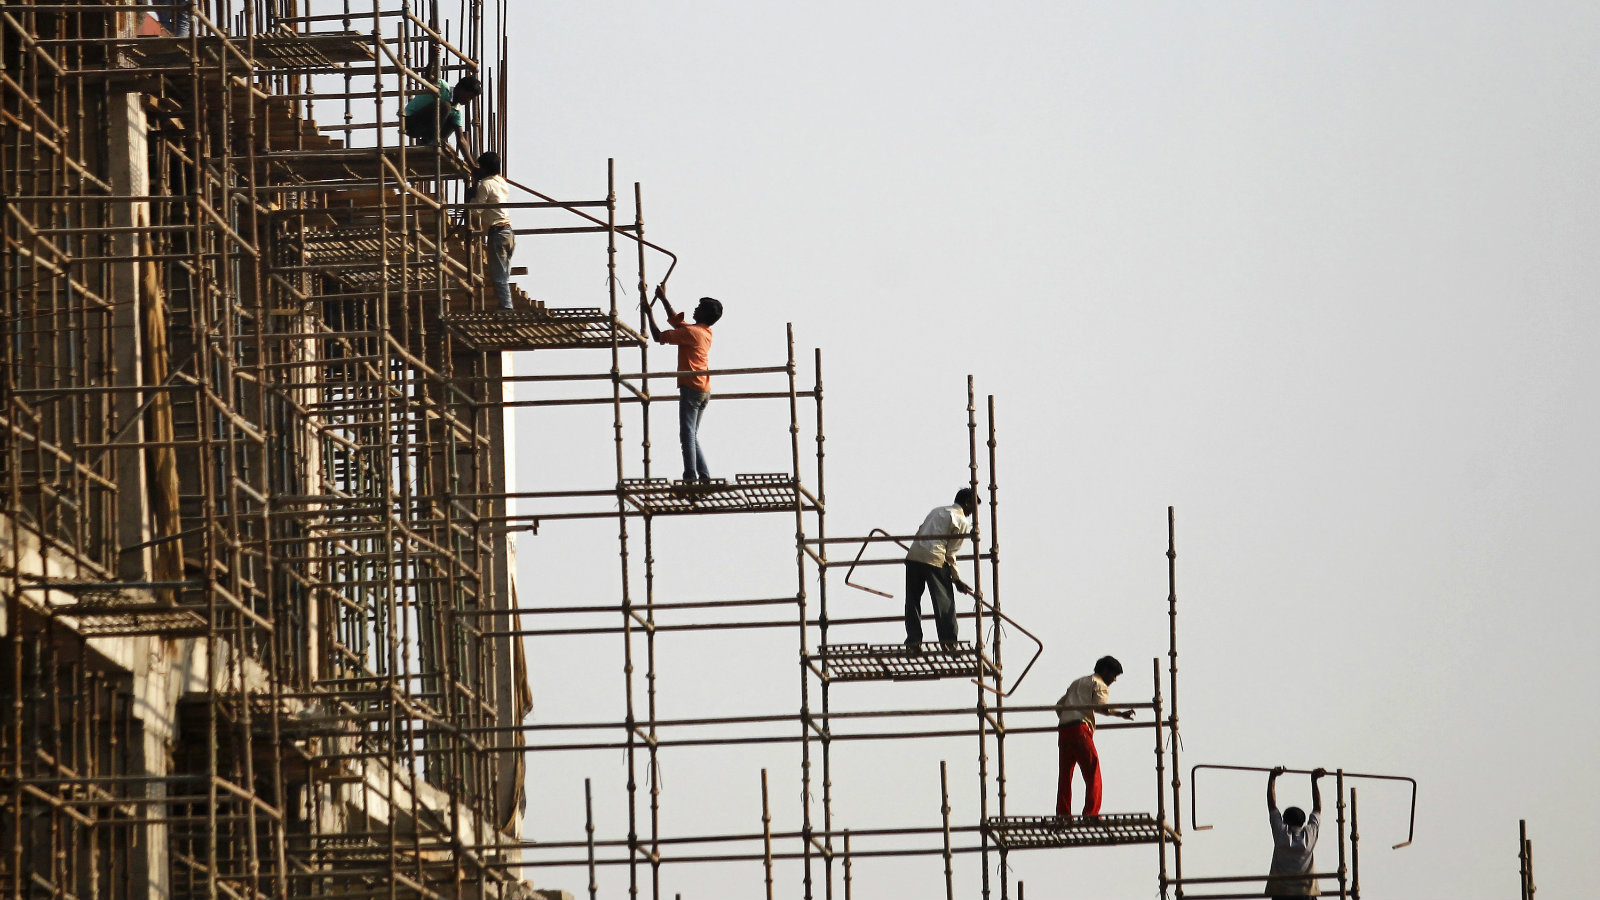 Labourers work at the construction site of a commercial complex in New Delhi November 20, 2013. India is likely to achieve an economic growth of between 5-5.5 percent in this fiscal year, the finance minister said last week, despite wide expectations of growth slipping below 5 percent by private economists.